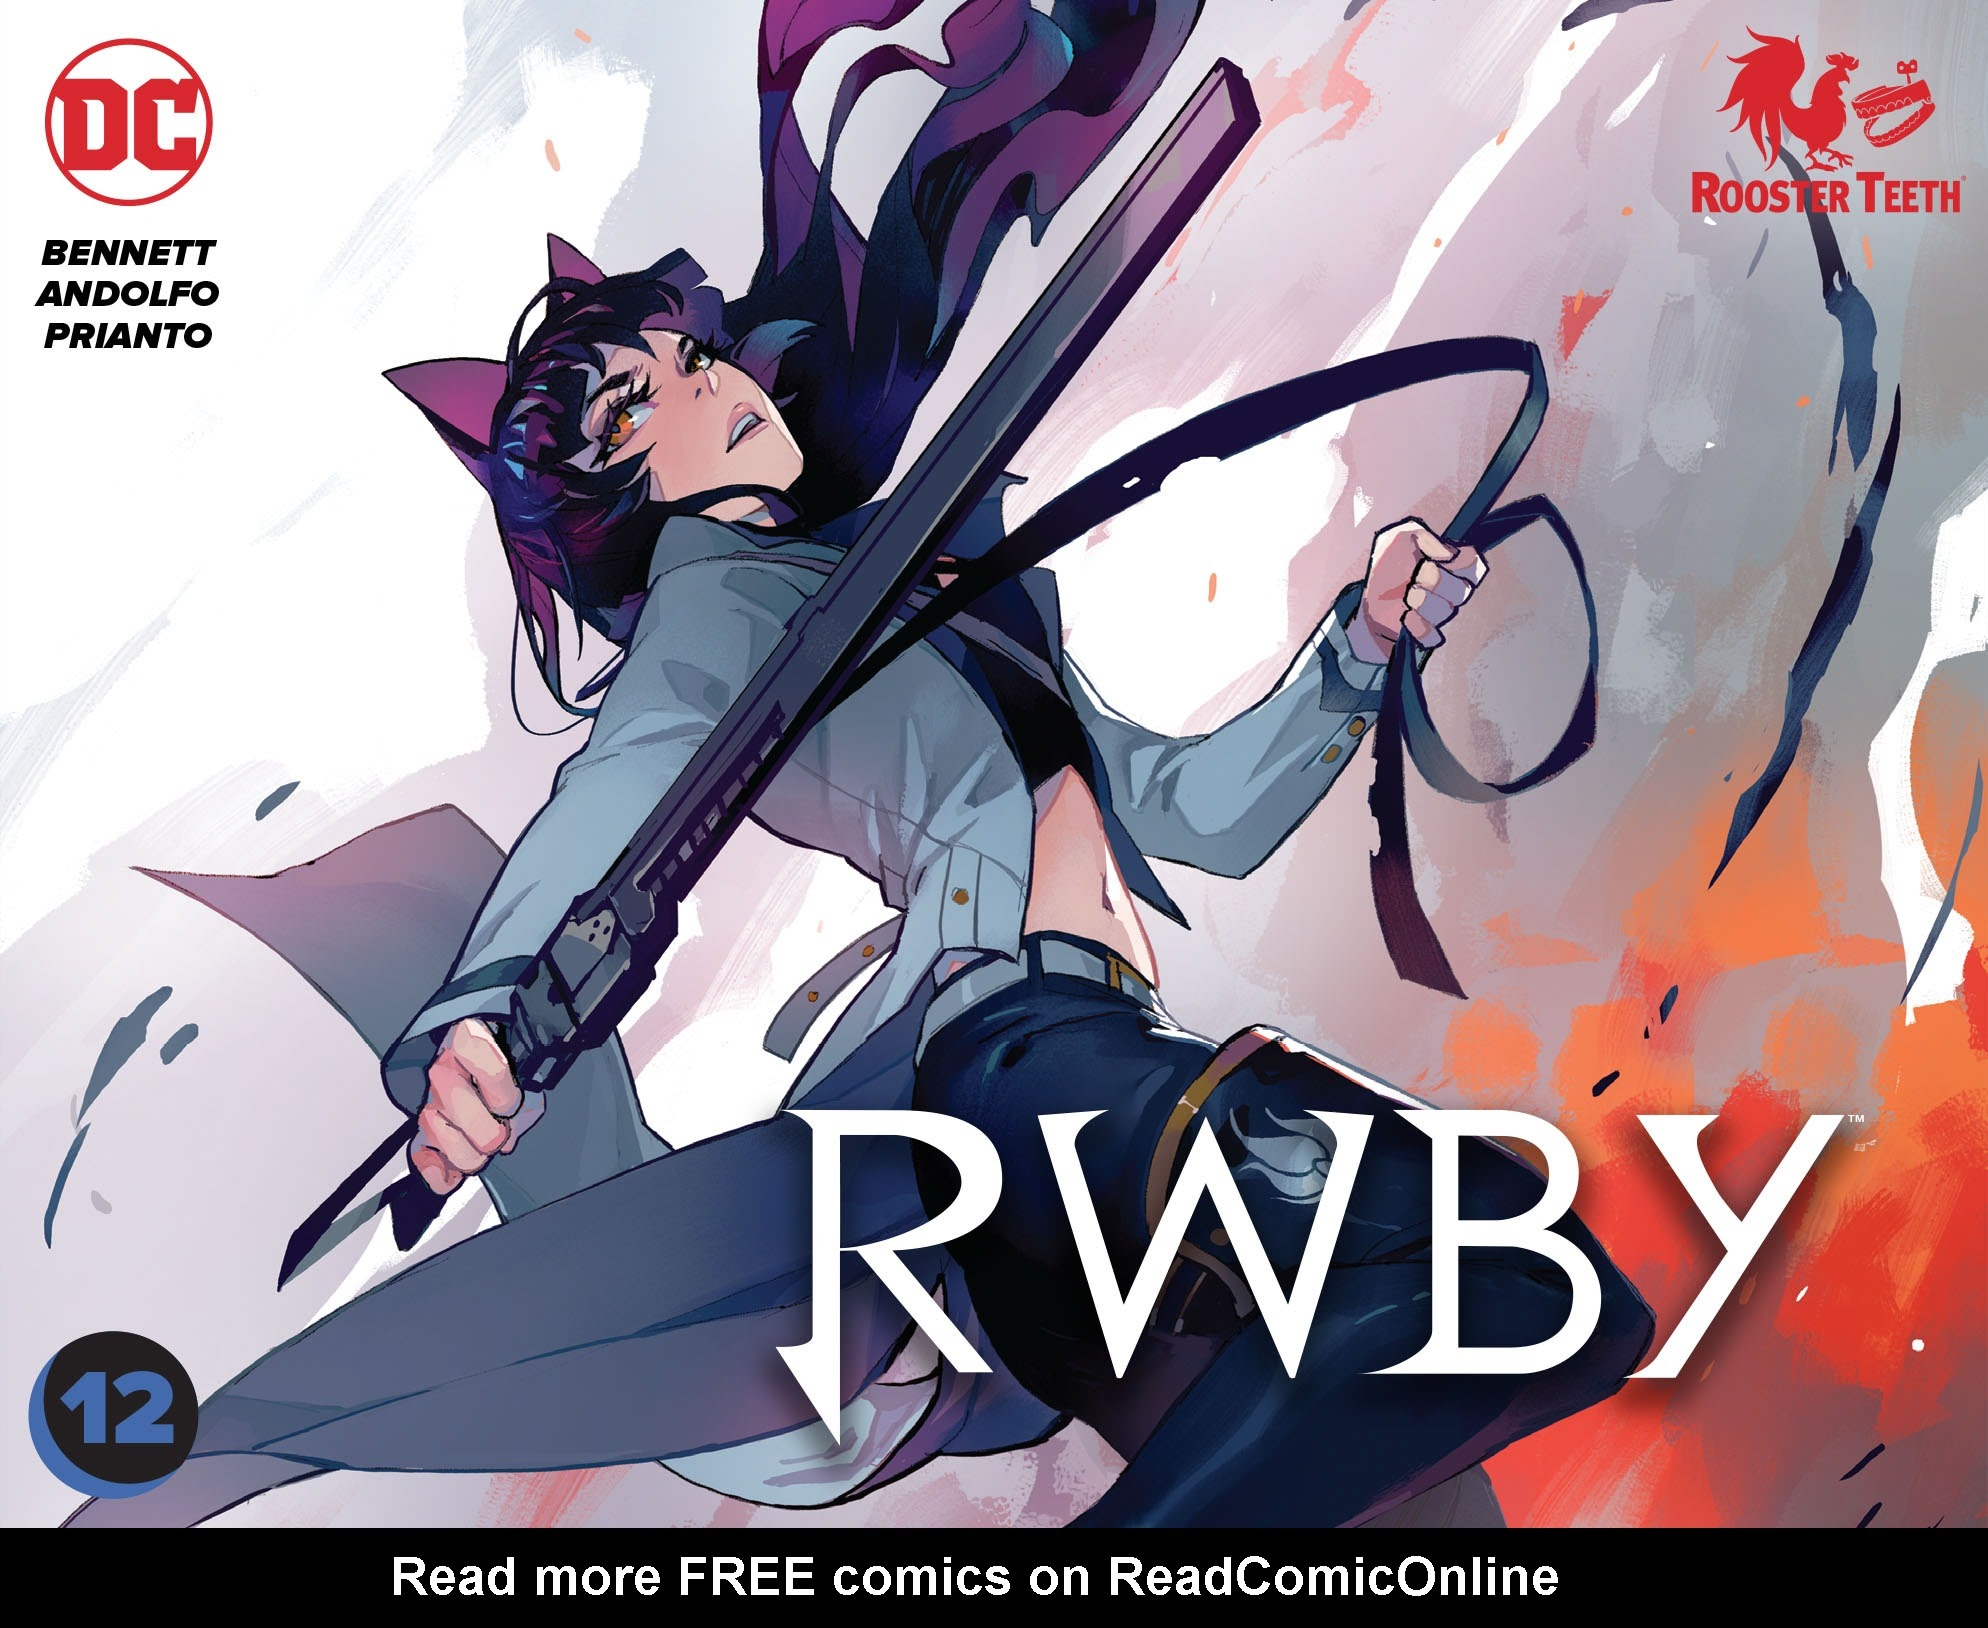 RWBY issue 12 - Page 1